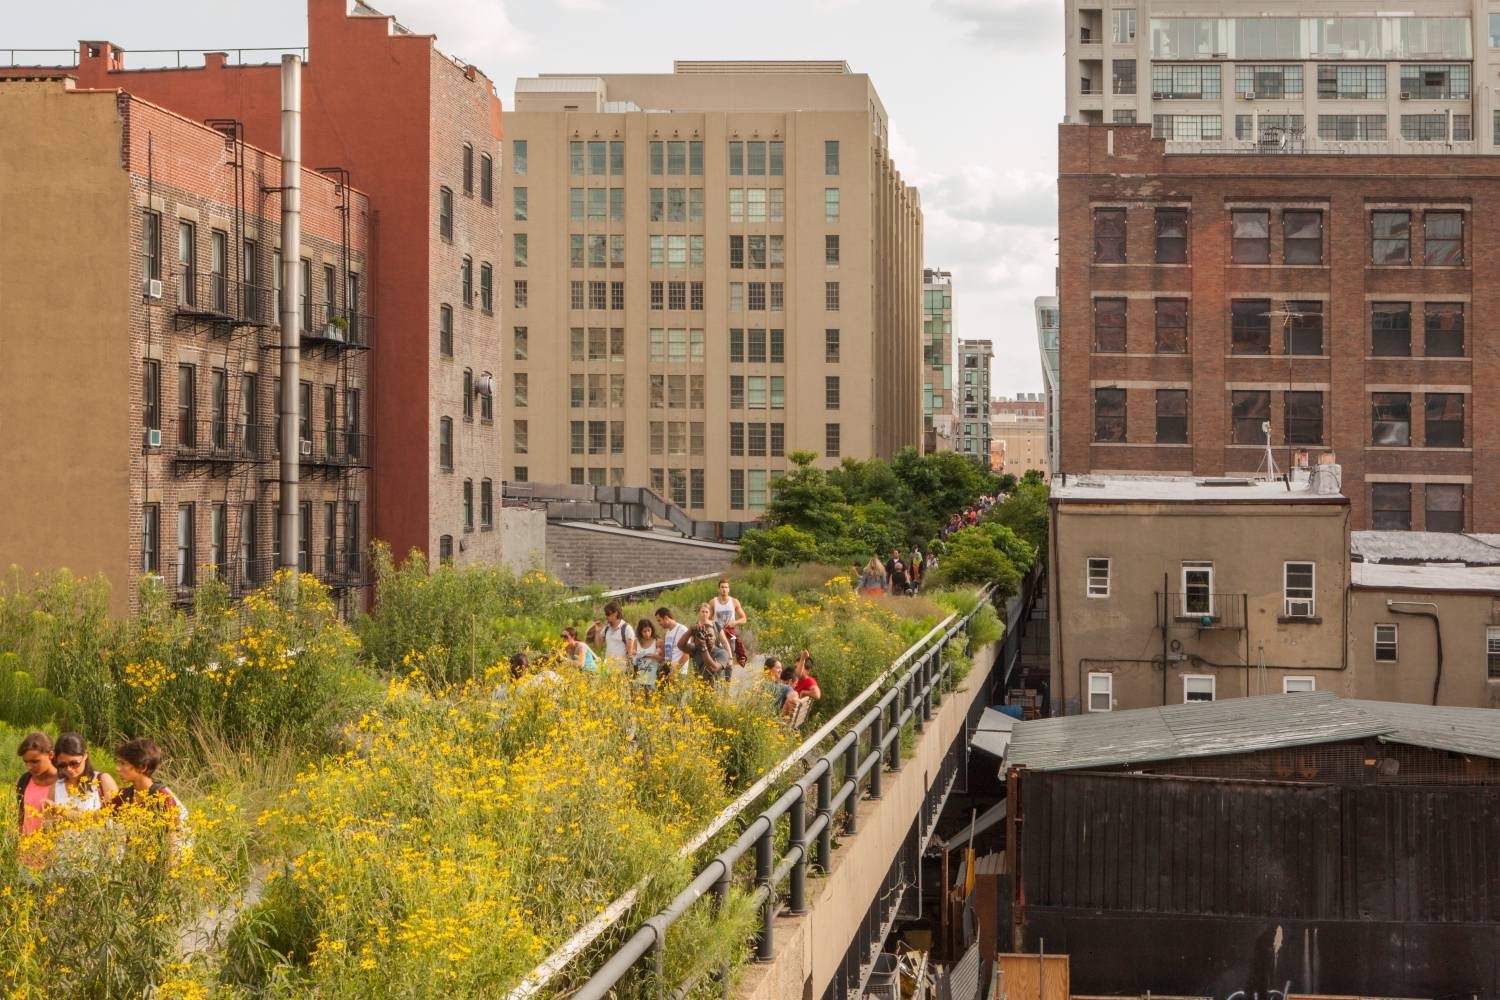 View of the High Line